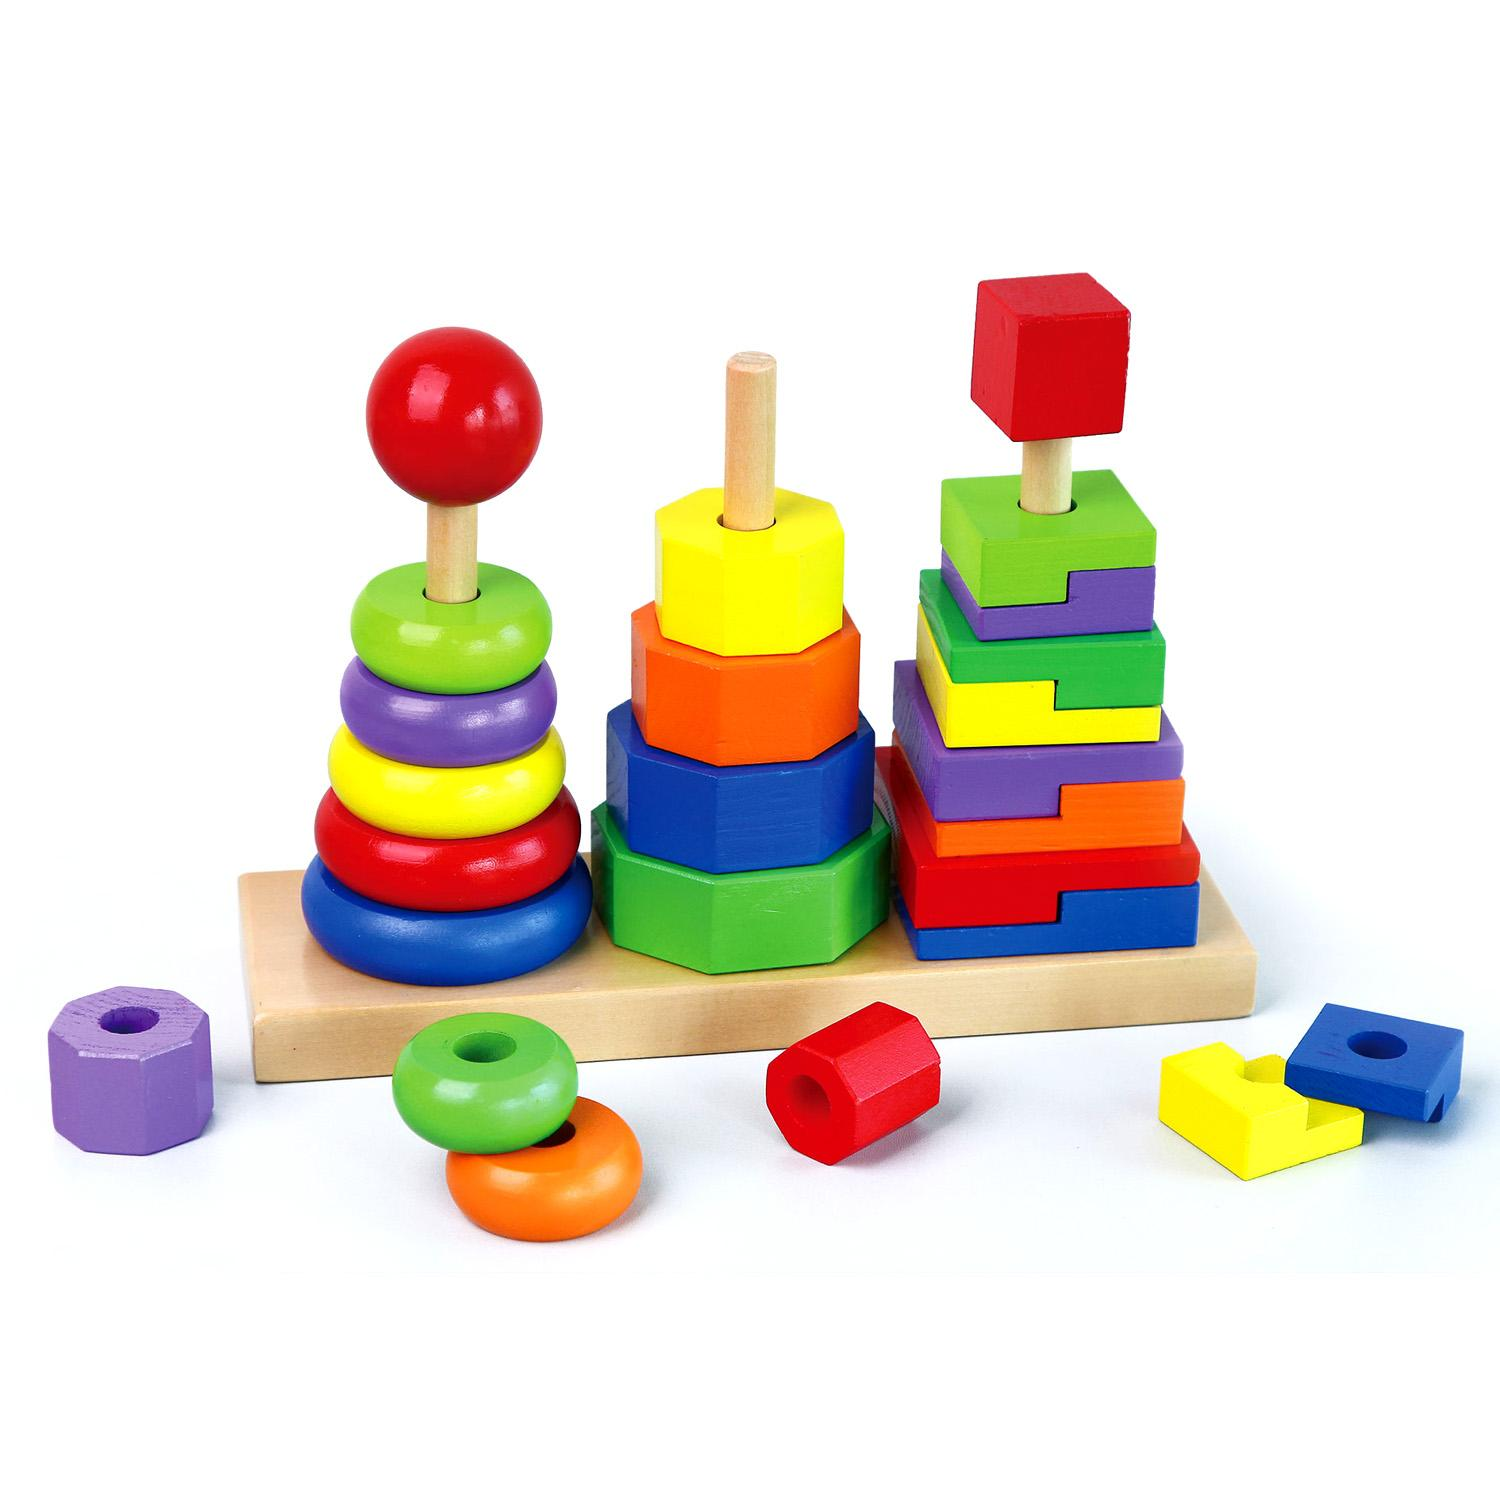 Kids Stacking Toys : Geometric stacker childrens wooden educational stacking